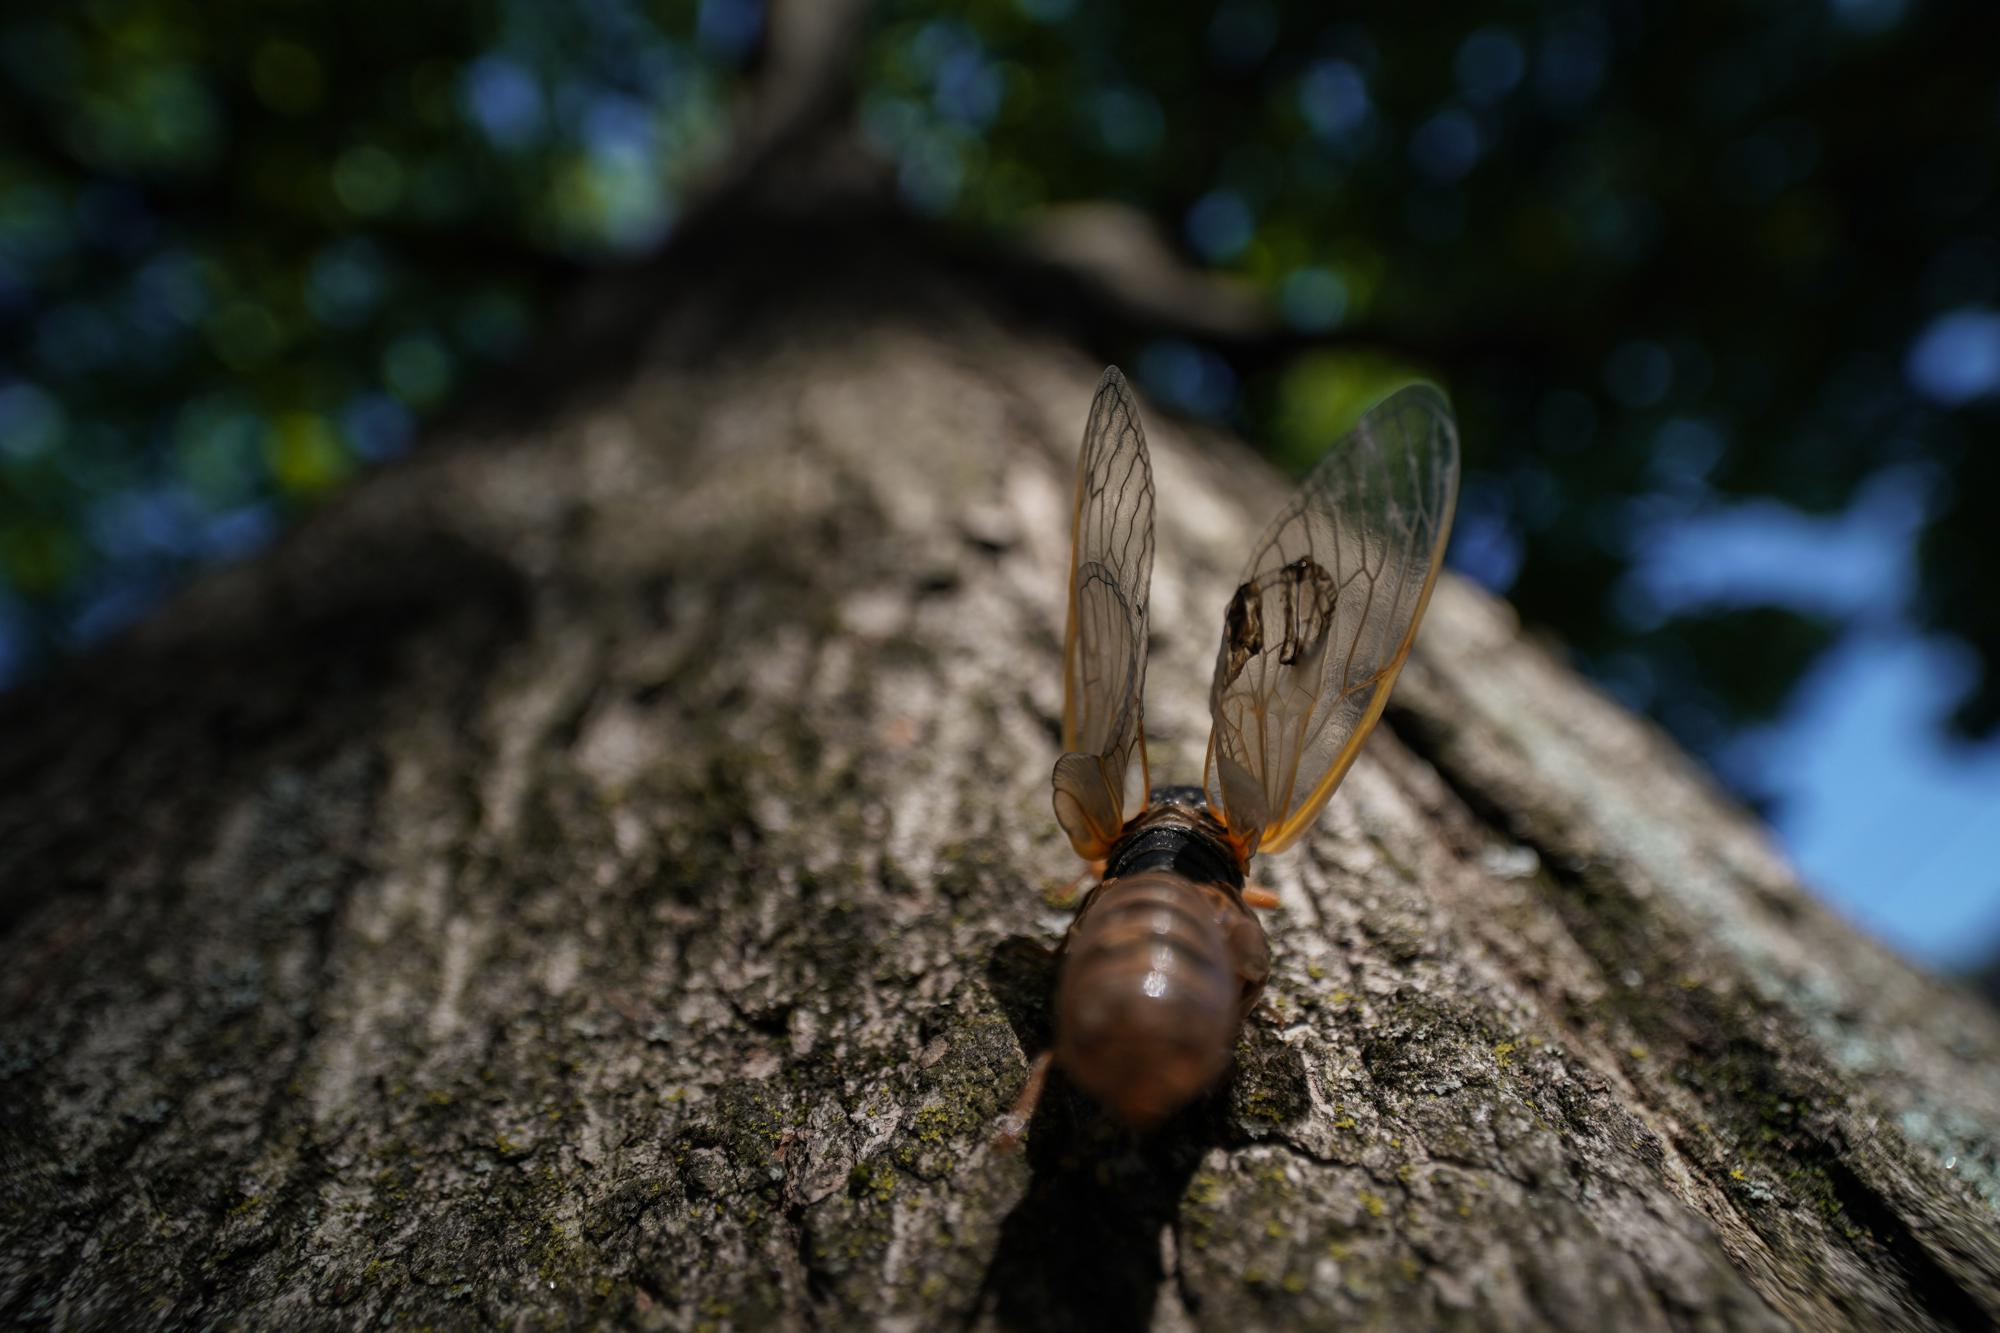 A cicada that failed to completely shed its nymph shell spreads its wings on a the base of a tree in Chevy Chase, Md., Monday, May 10, 2021. (AP Photo/Carolyn Kaster)